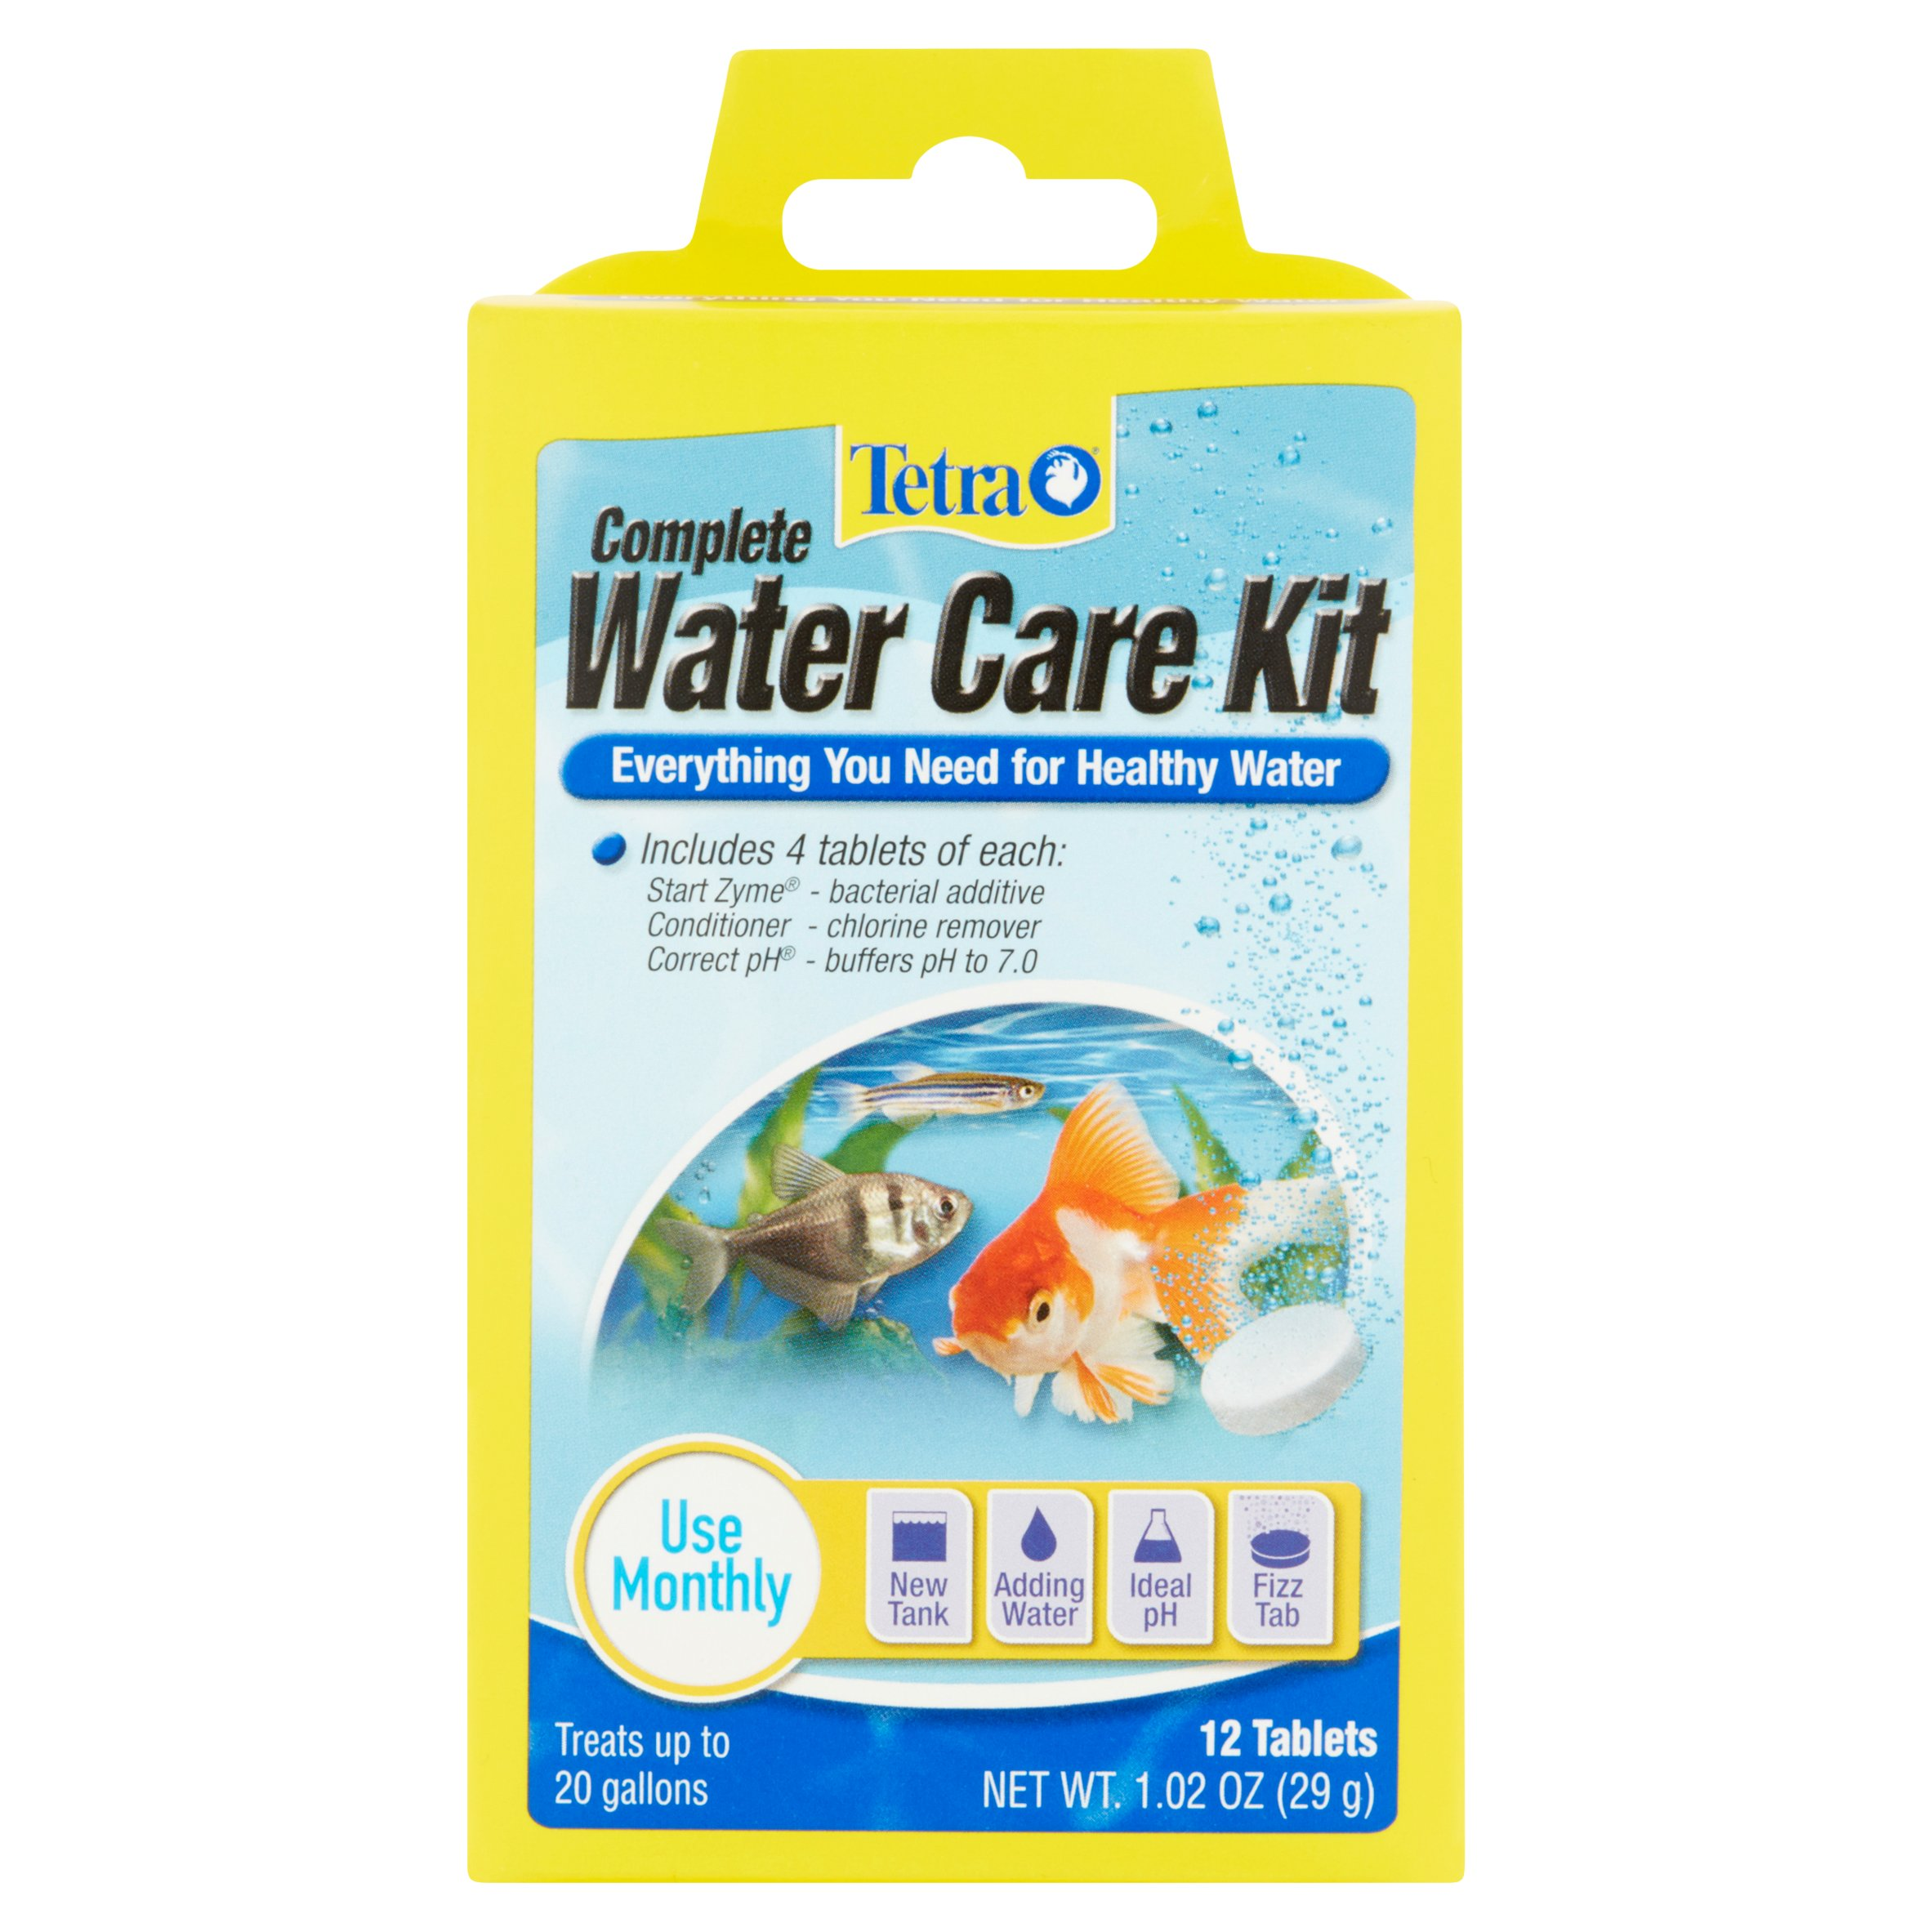 Tetra Complete Water Care Kit With TetraCare, 12 Count